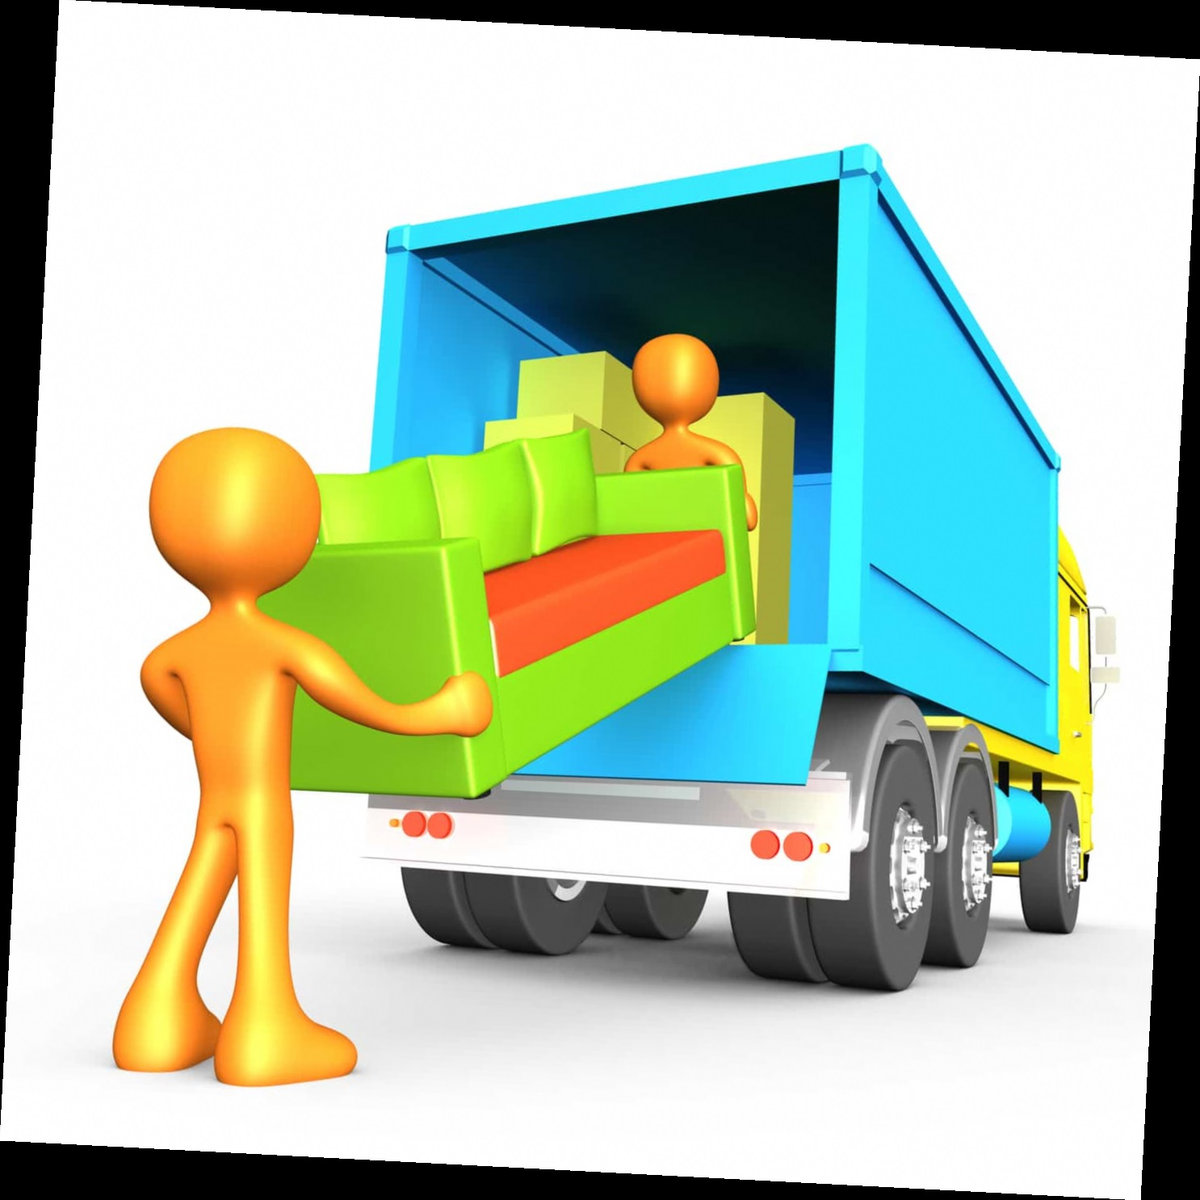 Have Hassle-Free Relocation With Flat Rate Movers